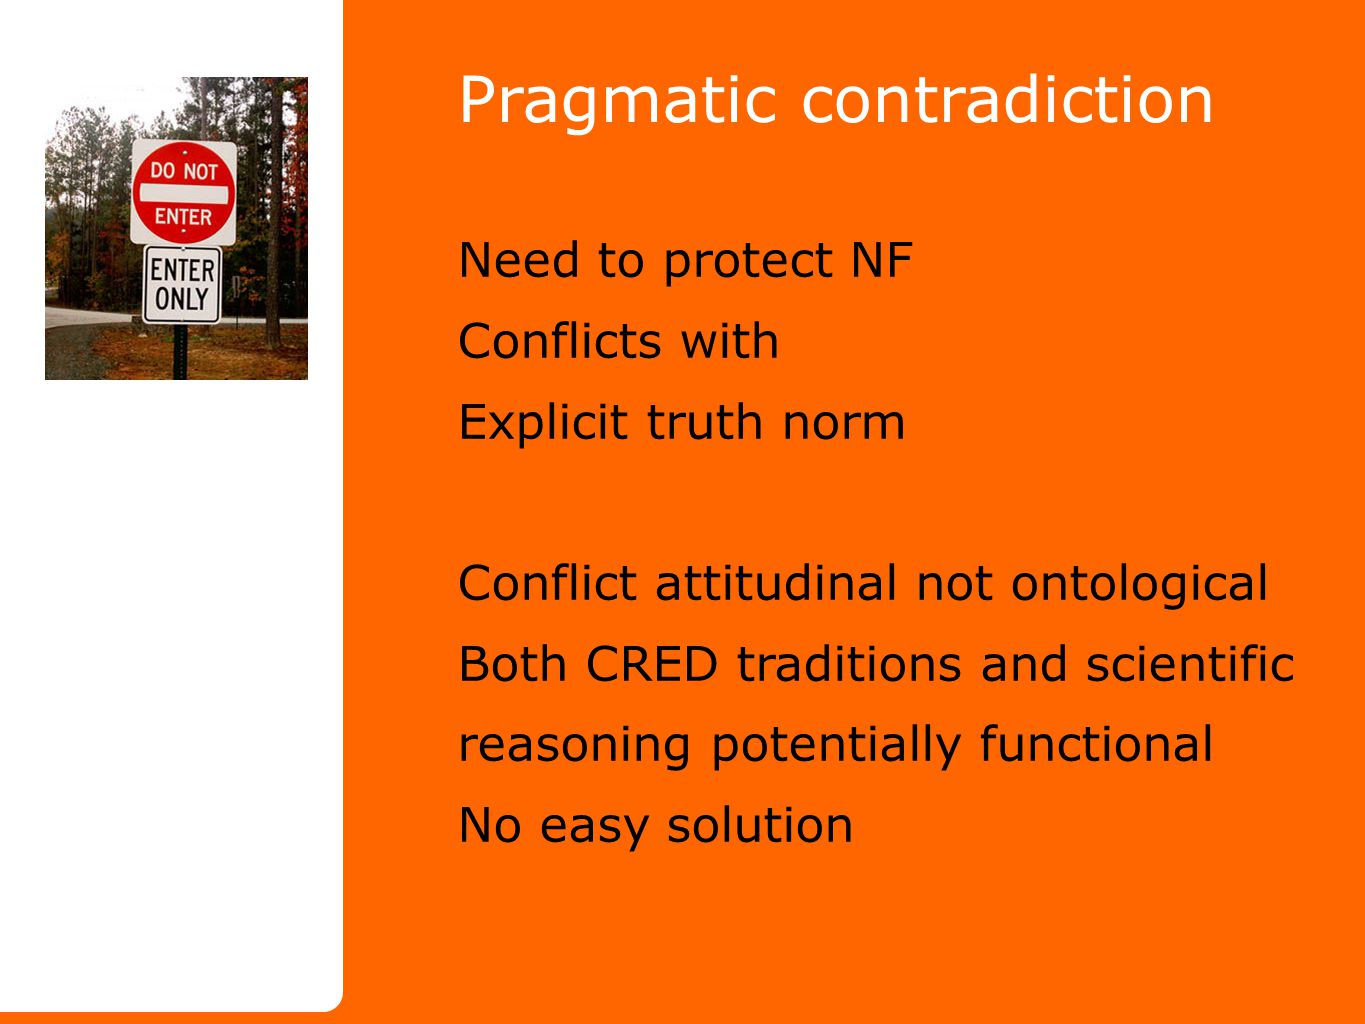 Pragmatic contradiction Need to protect NF Conflicts with Explicit truth norm Conflict attitudinal not ontological Both CRED traditions and scientific reasoning potentially functional No easy solution